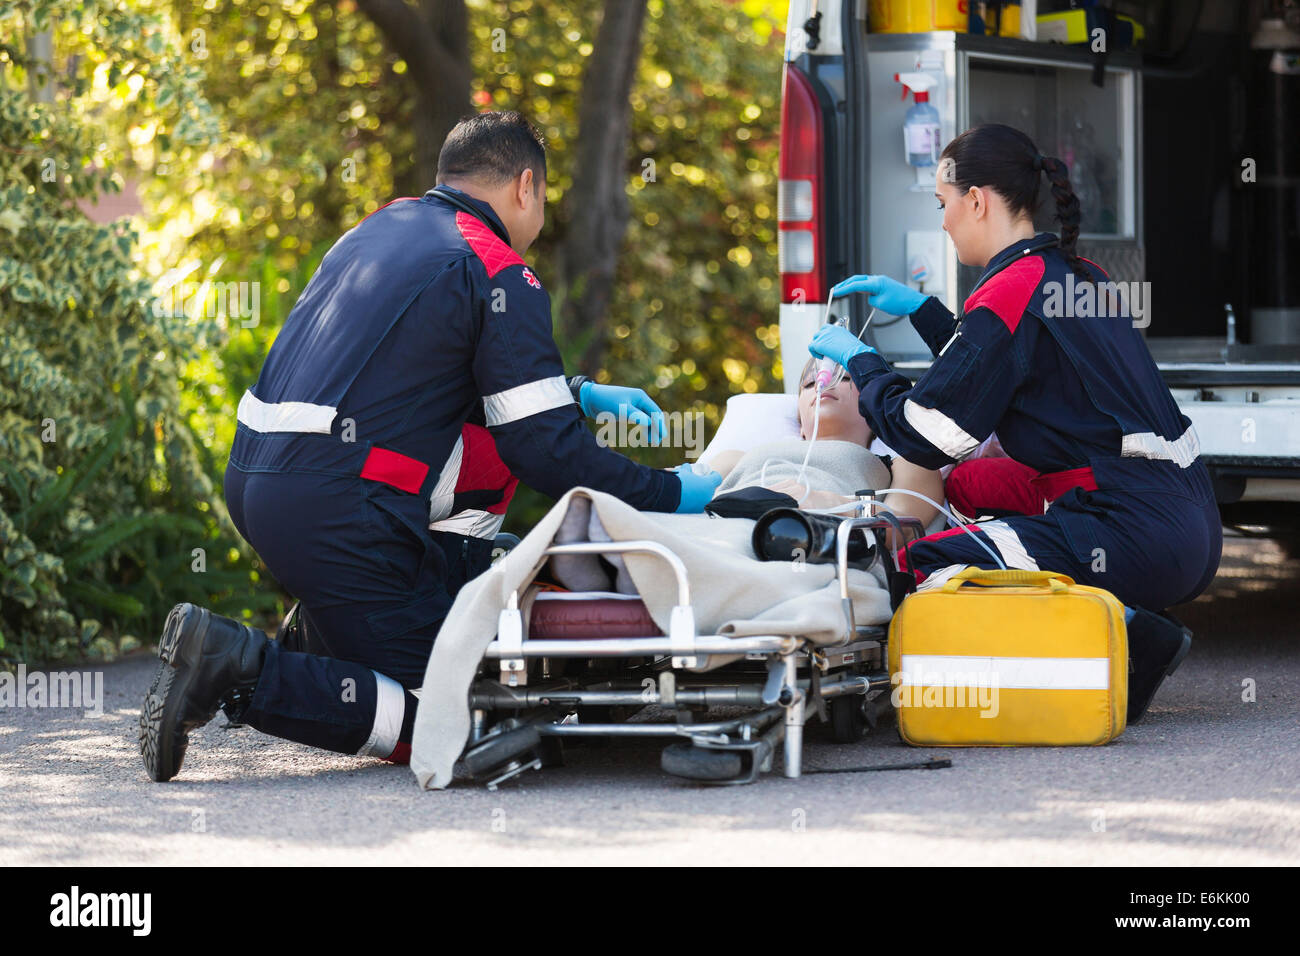 team of emergency medical staff rescuing patient Stock Photo